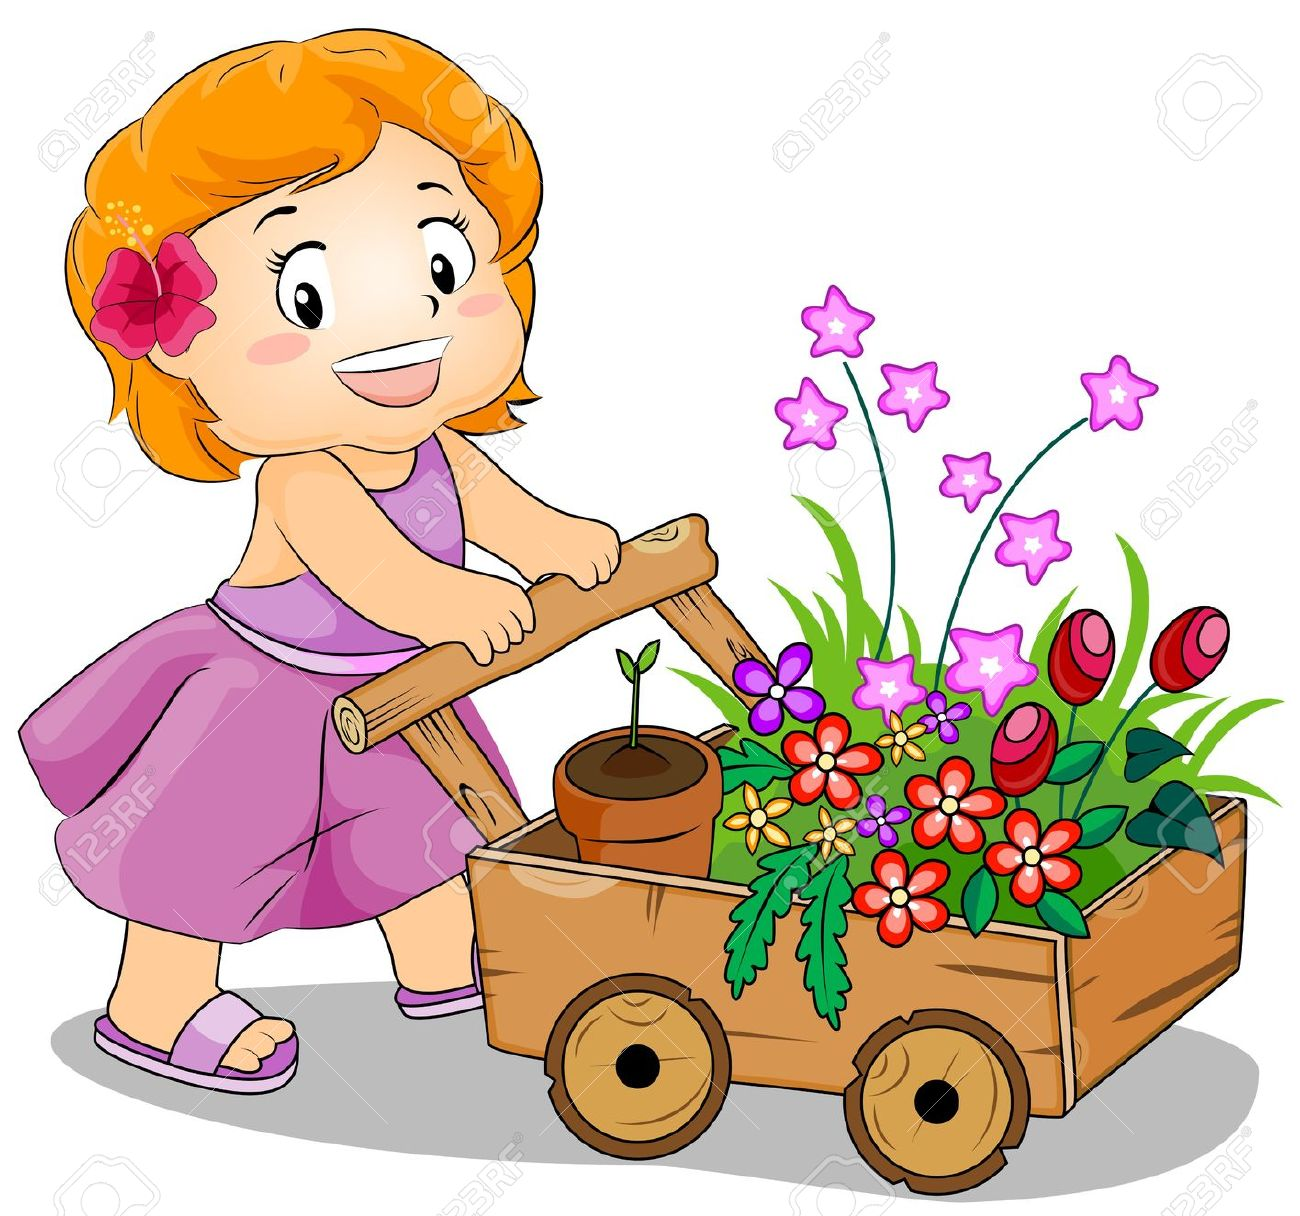 illustration featuring a young pushing a cart of flowers